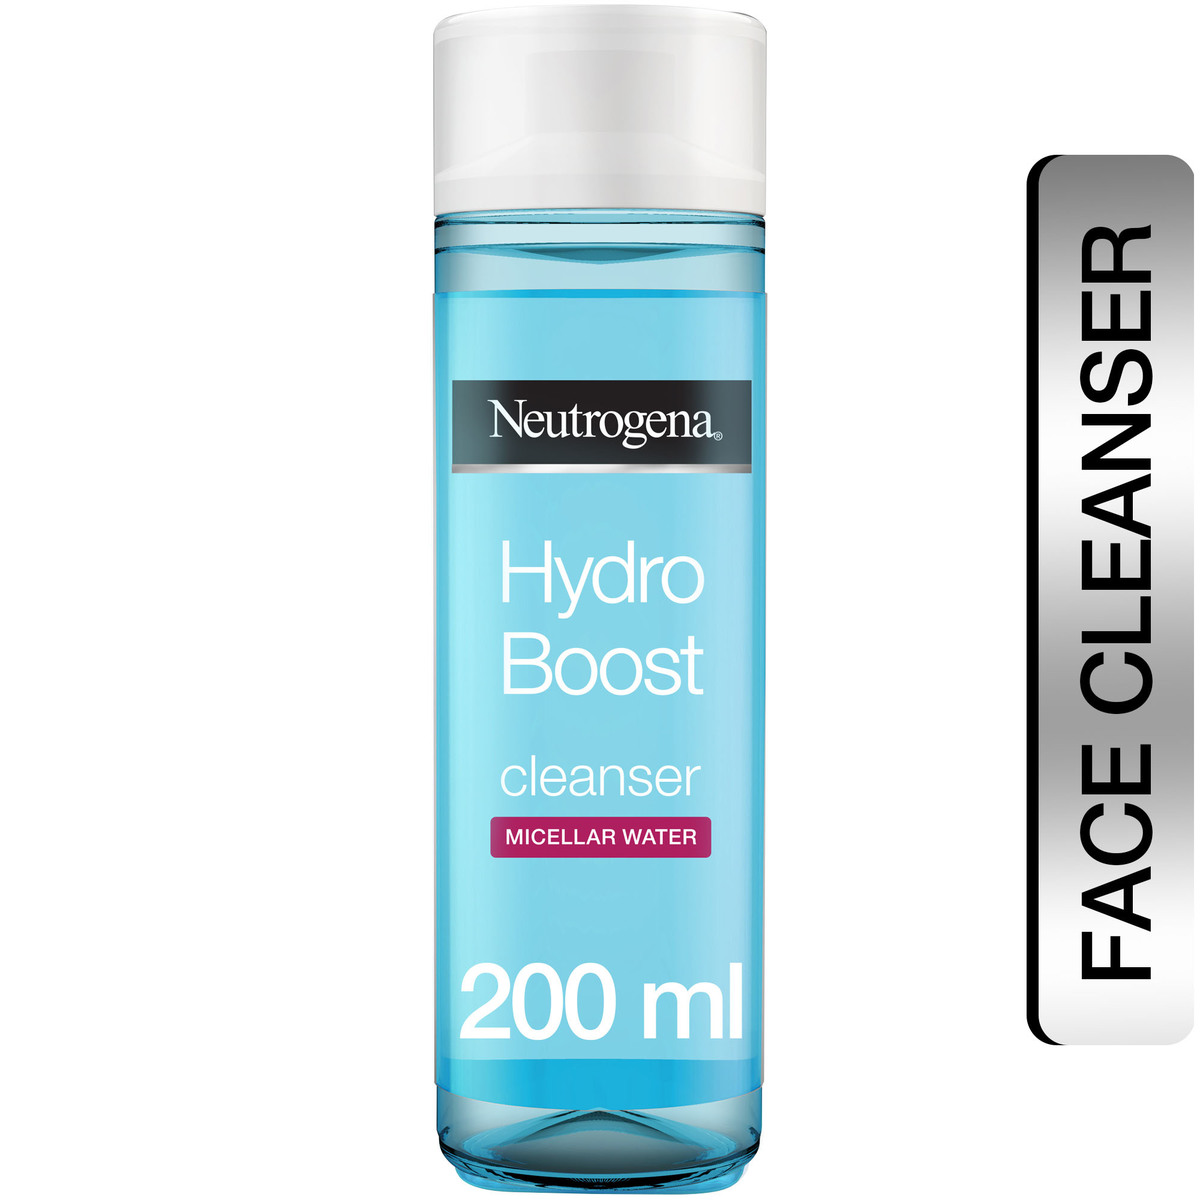 Buy Neutrogena Micellar Water Hydro Boost 200ml - Facial